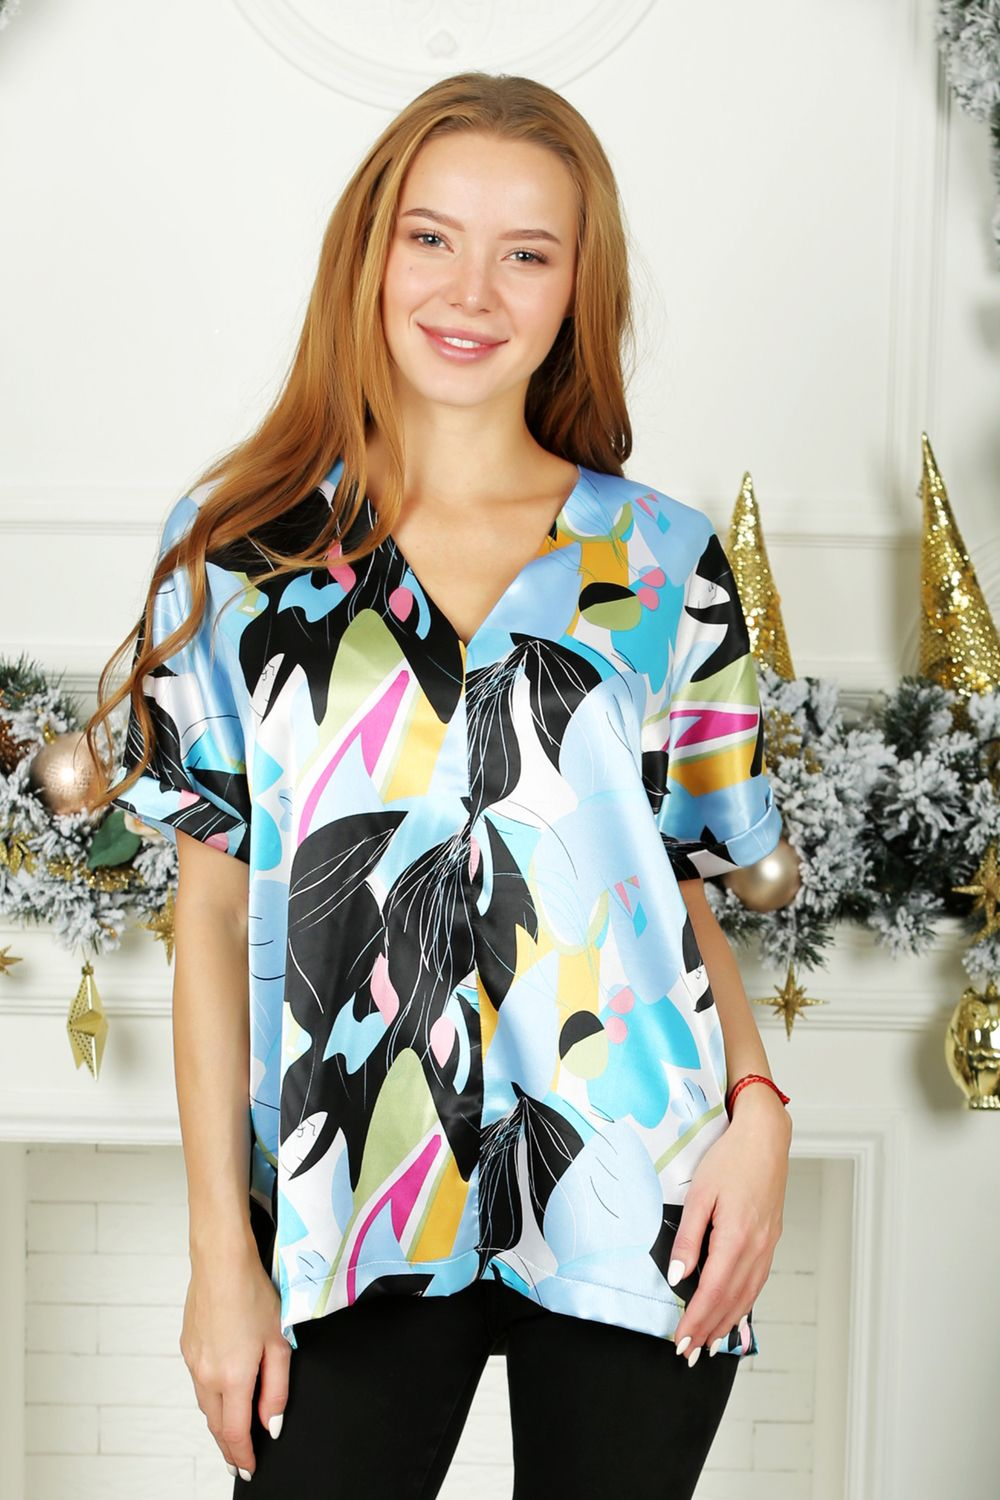 Lika Dress / Blouse Anna Art. 1087